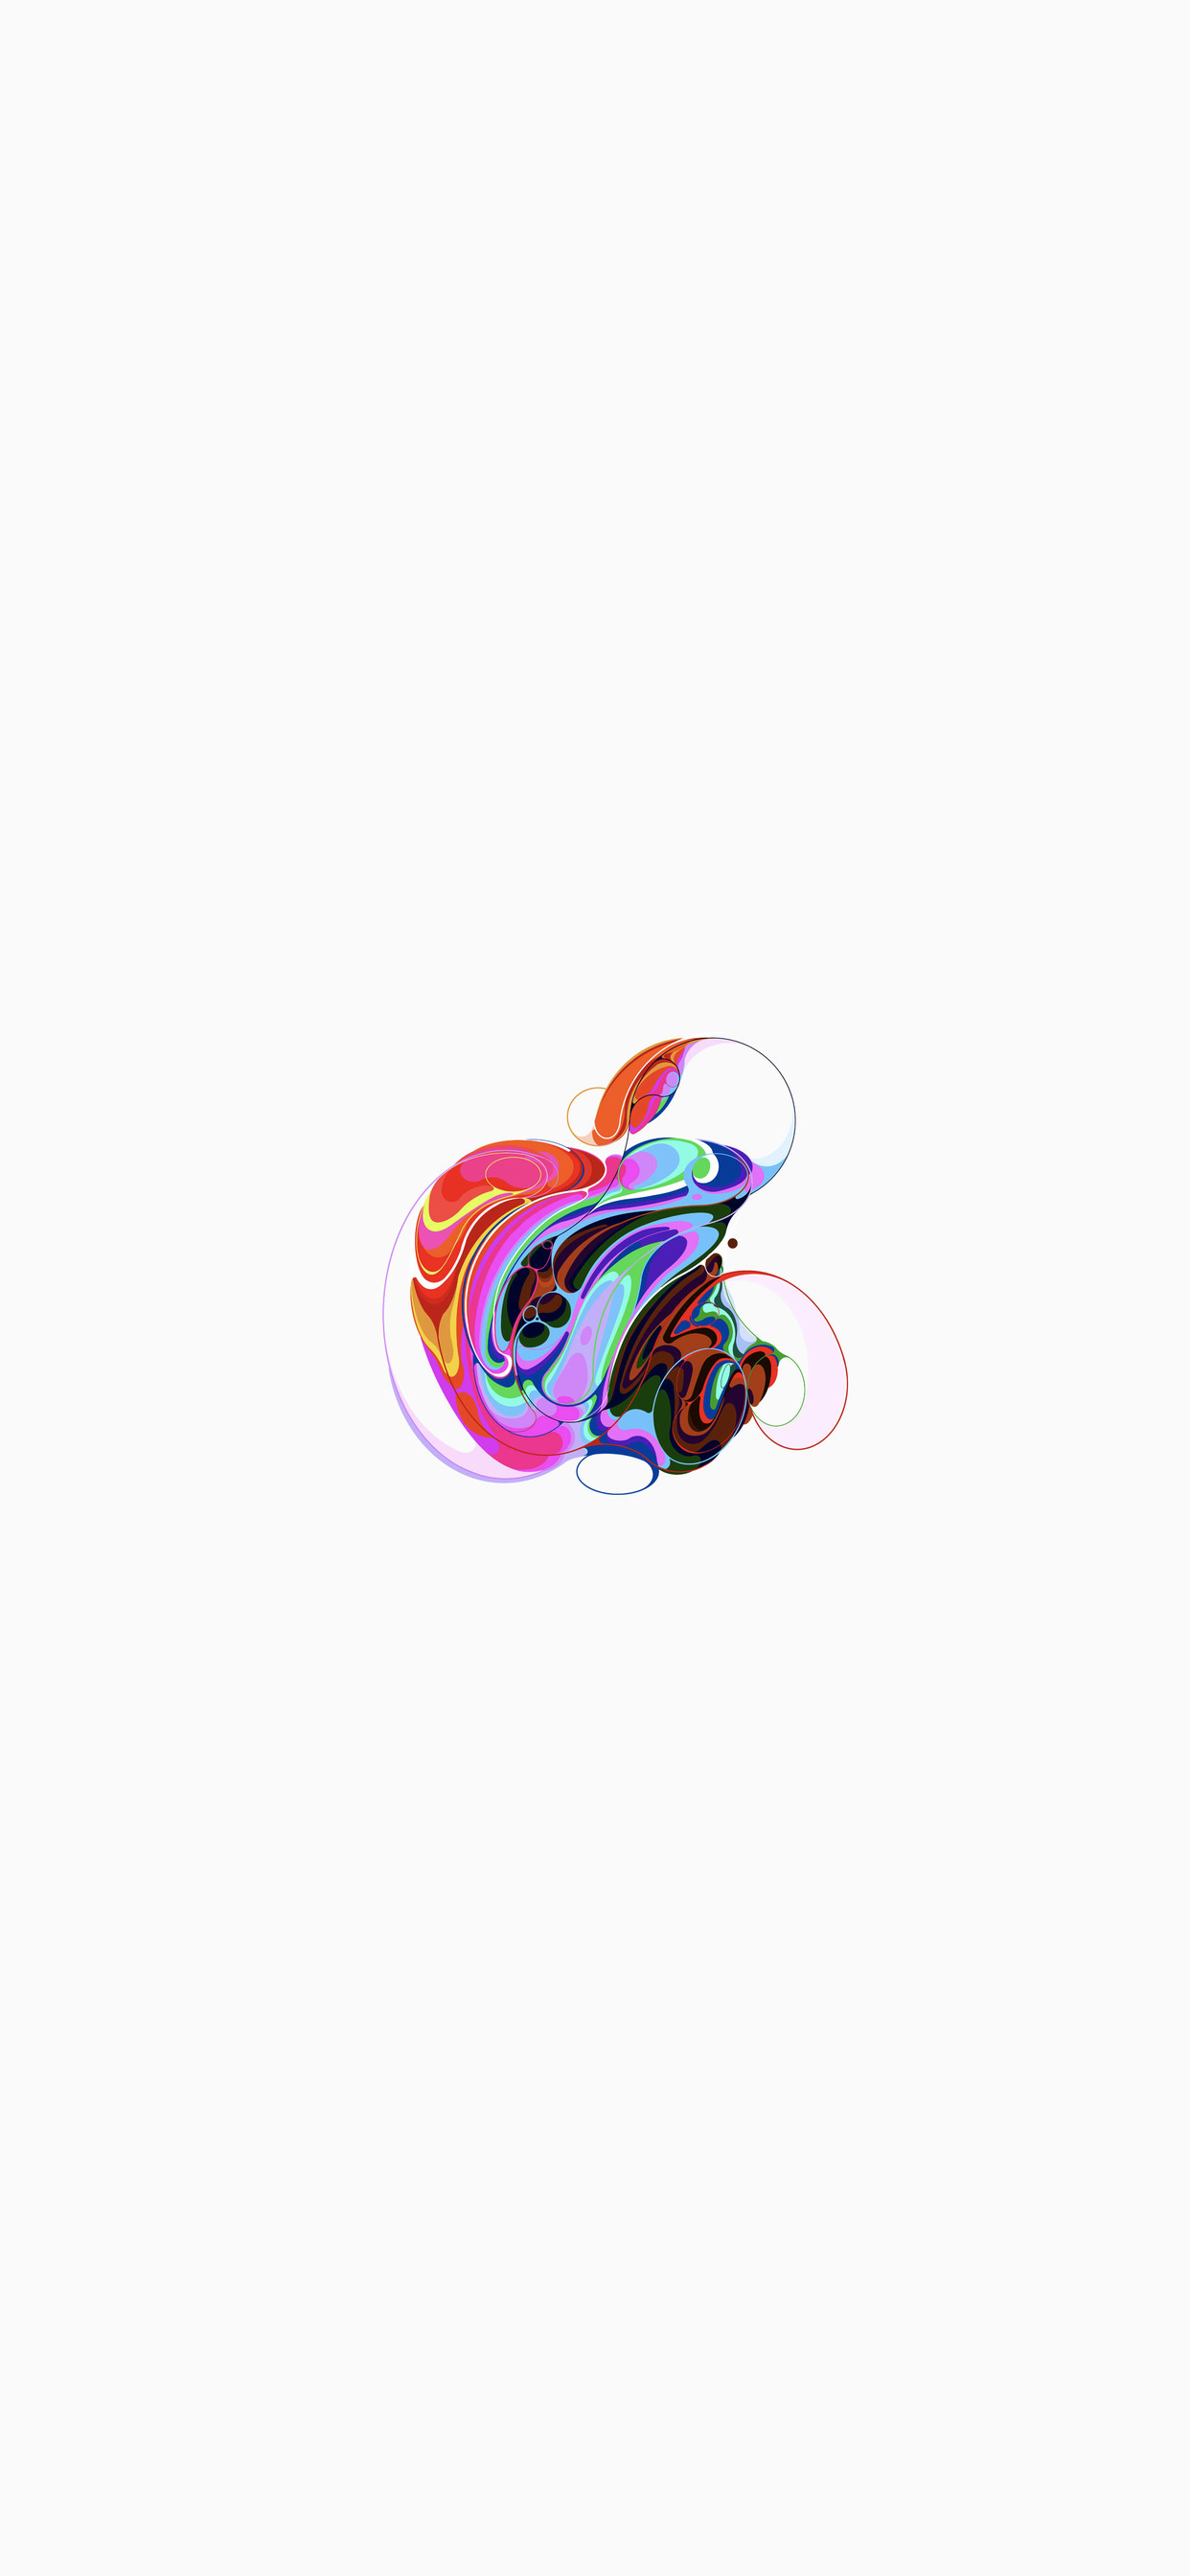 8 Apple logo